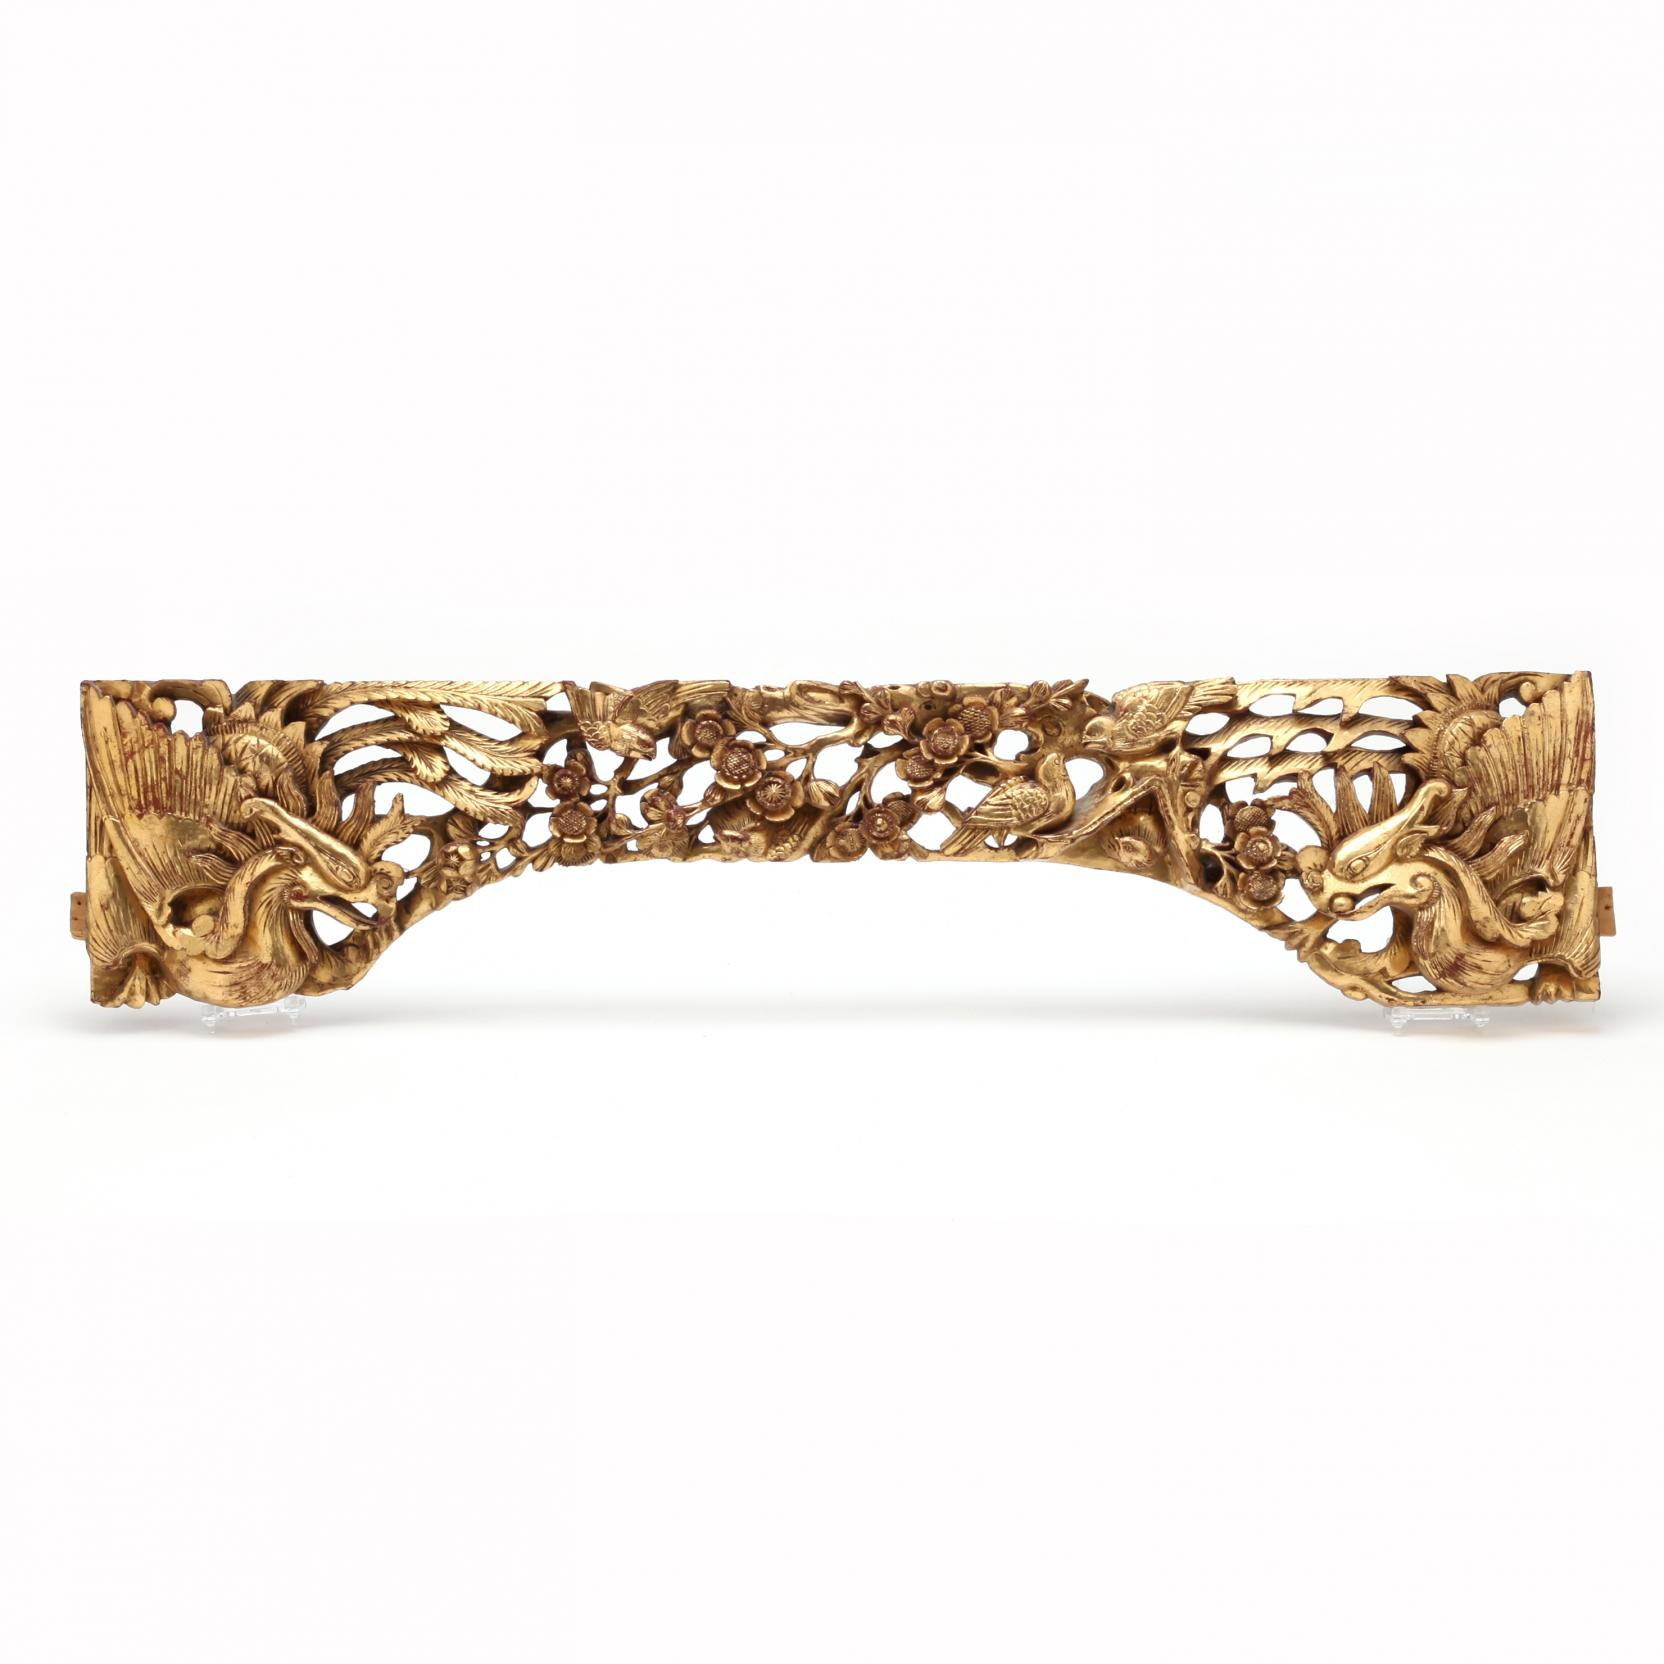 a-gilded-and-lacquered-carved-wooden-frieze